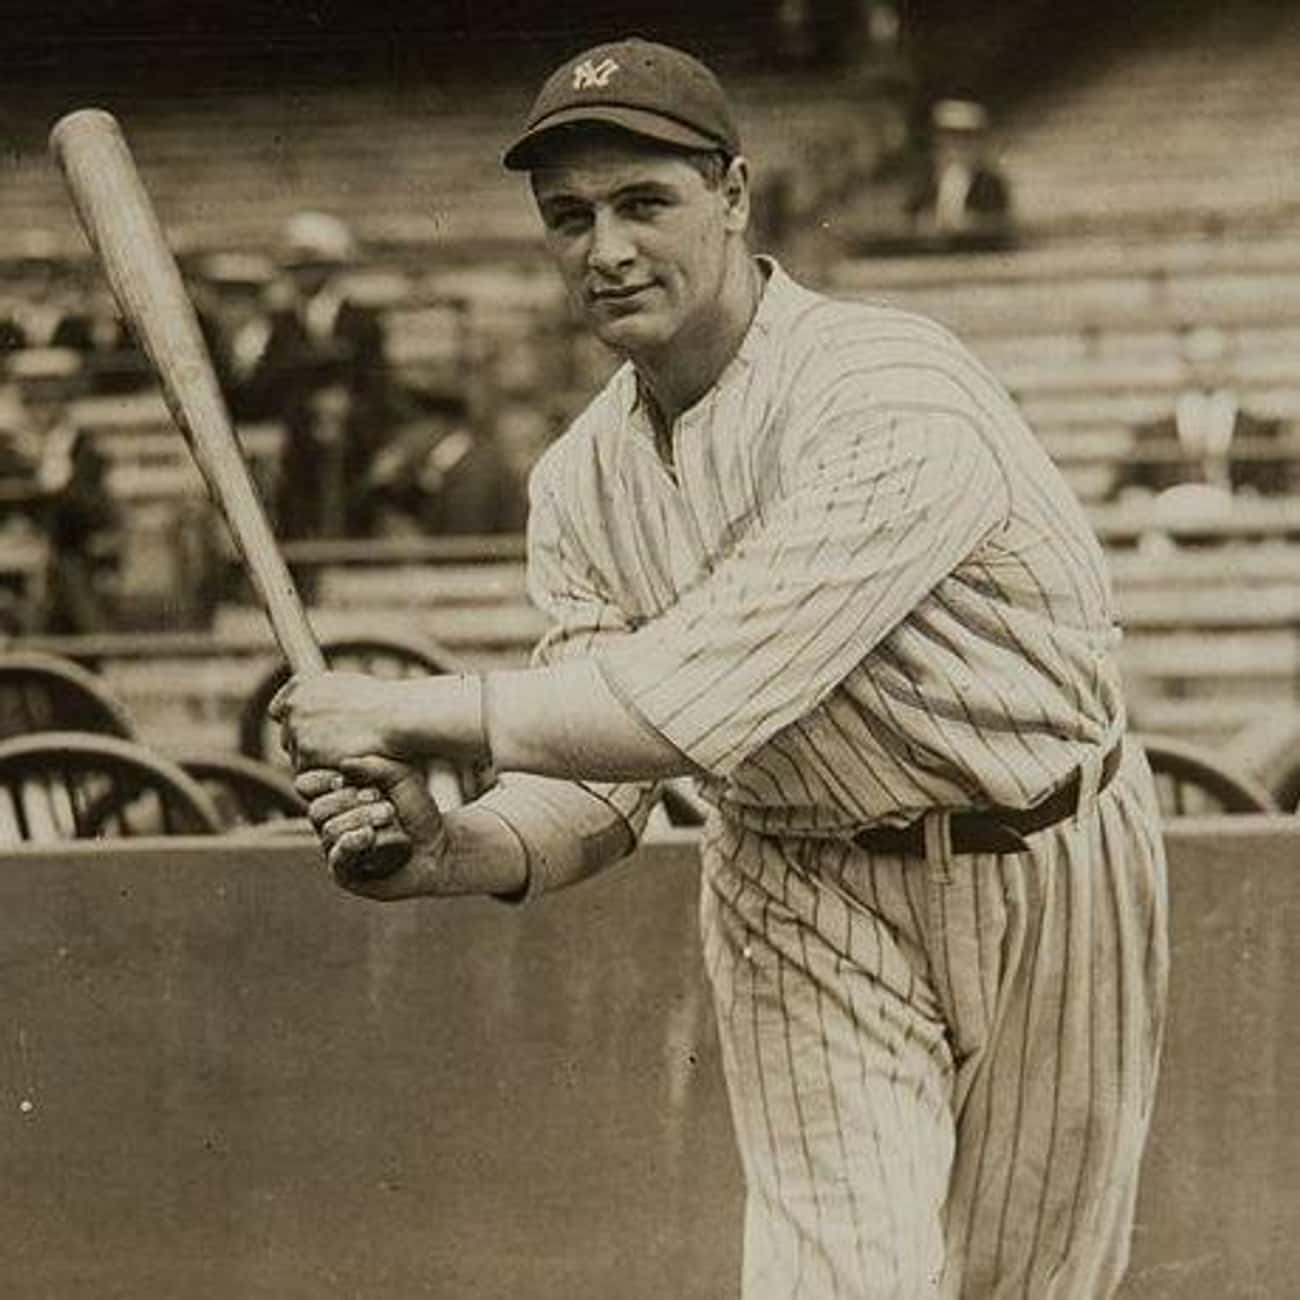 Lou Gehrig is listed (or ranked) 1 on the list The Best Athletes Who Wore #4